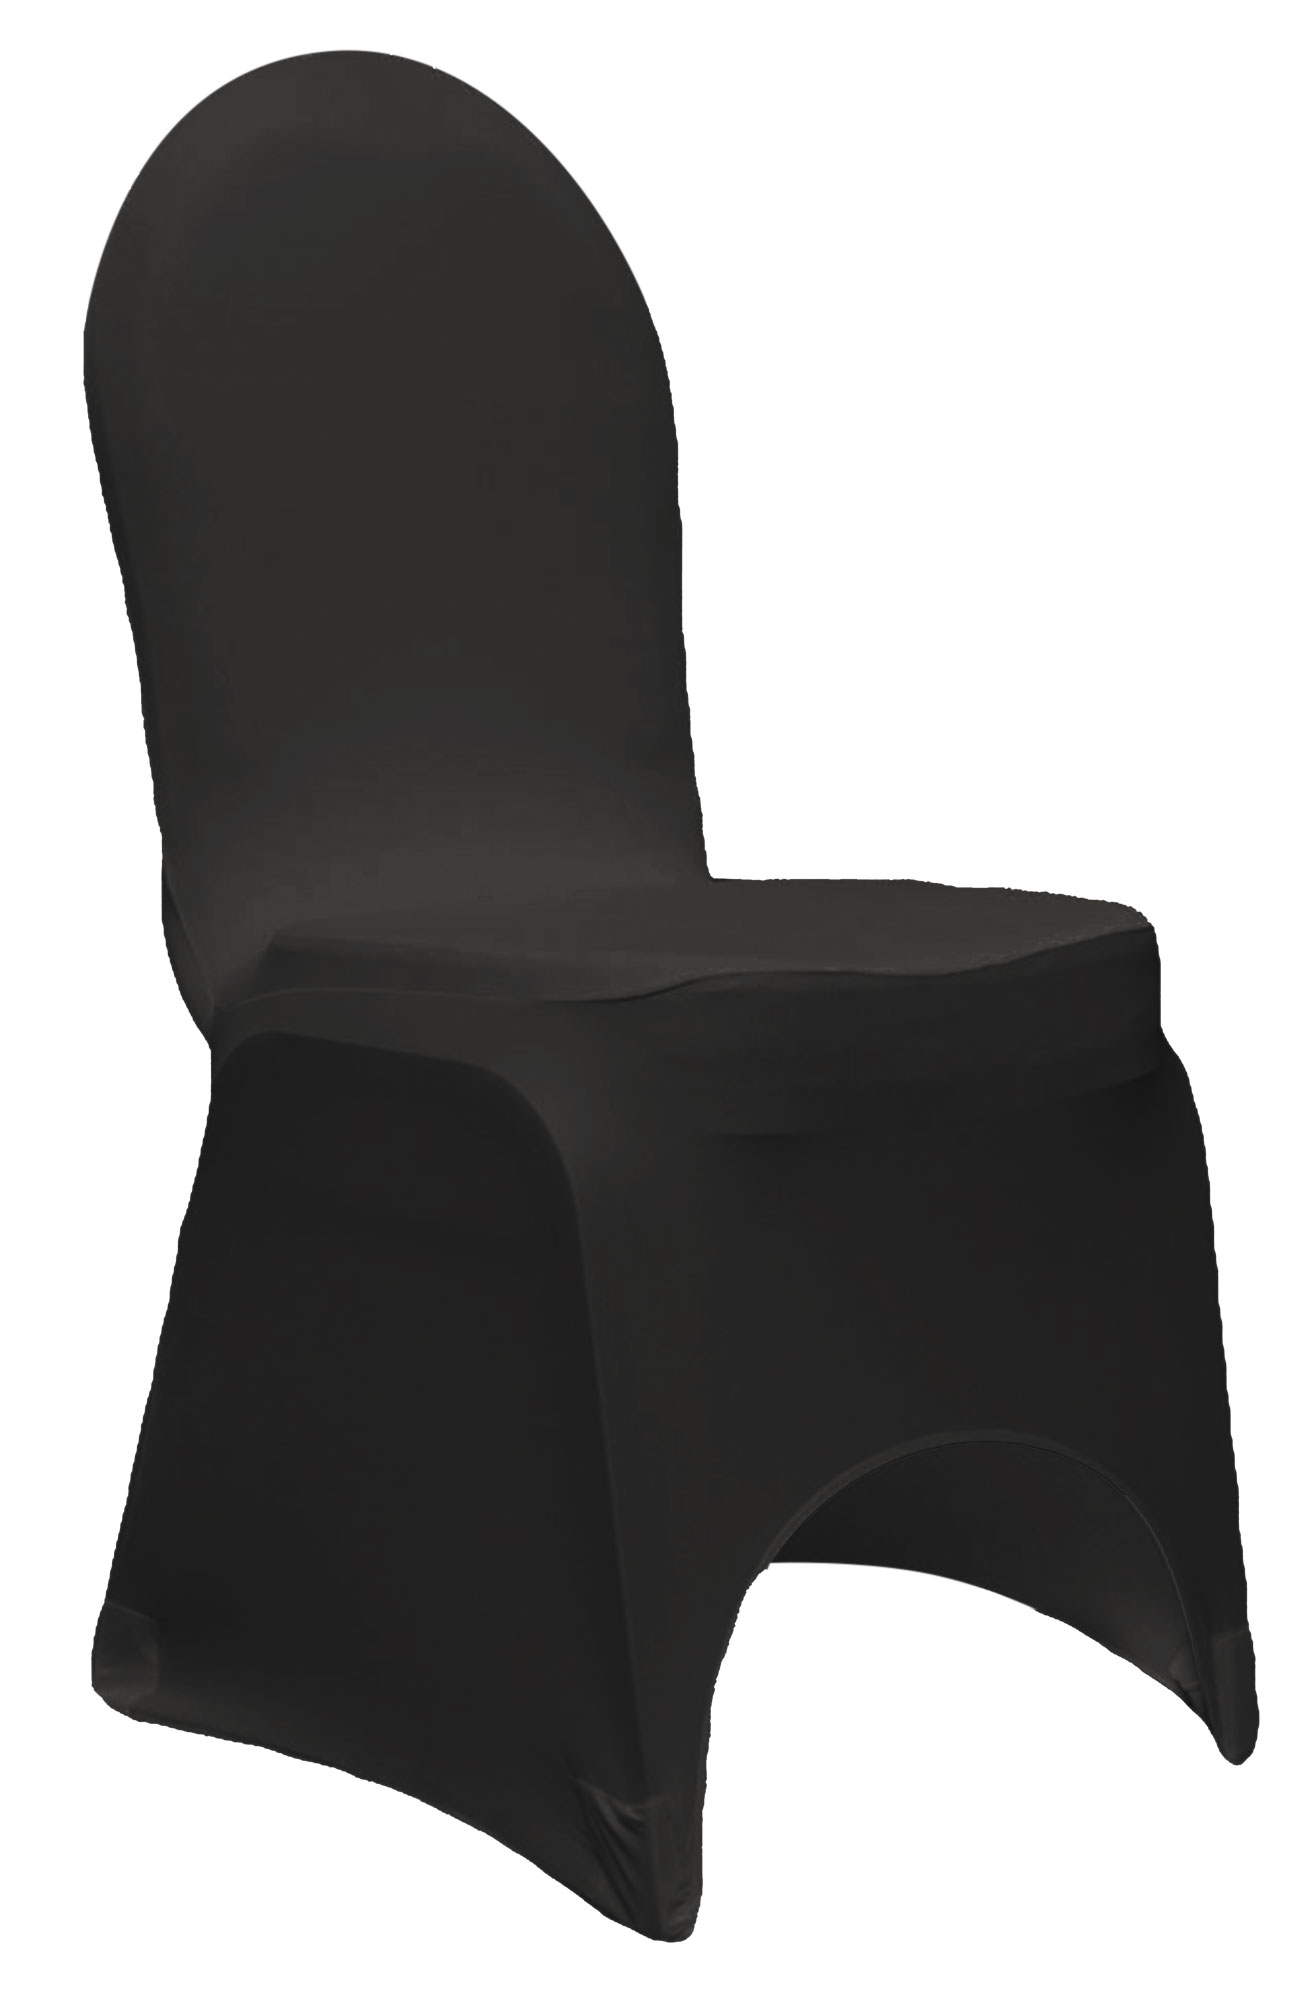 black chair covers to hire modern grey accent chairs tablecloths and napkins for weddings or